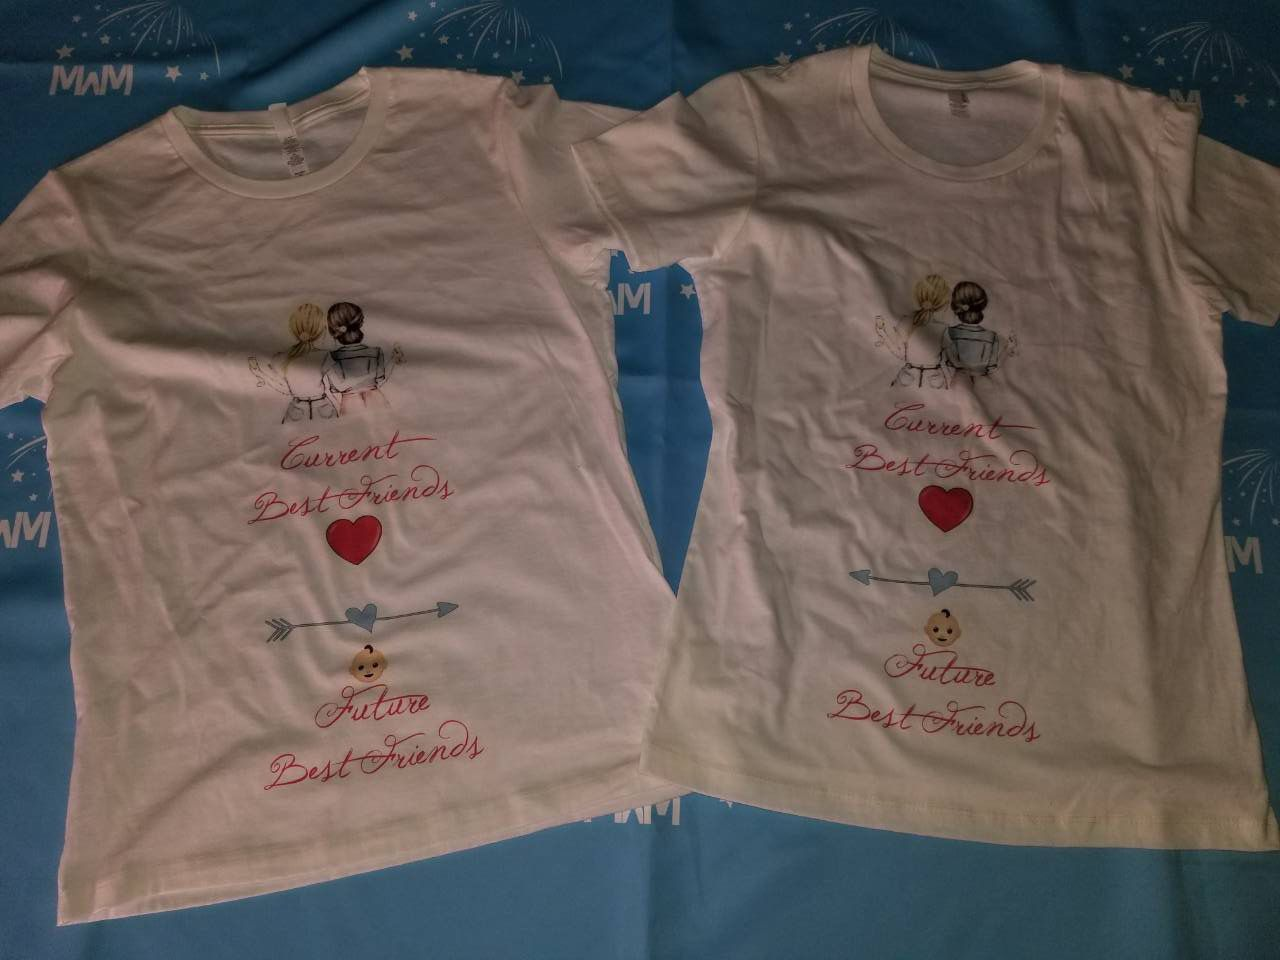 c6450eba3 Current Best friends, Future Best Friends, Maternity Matching Ladies Shirts,  Married With Mickey, Sign Shop in Brooklyn 13thAve